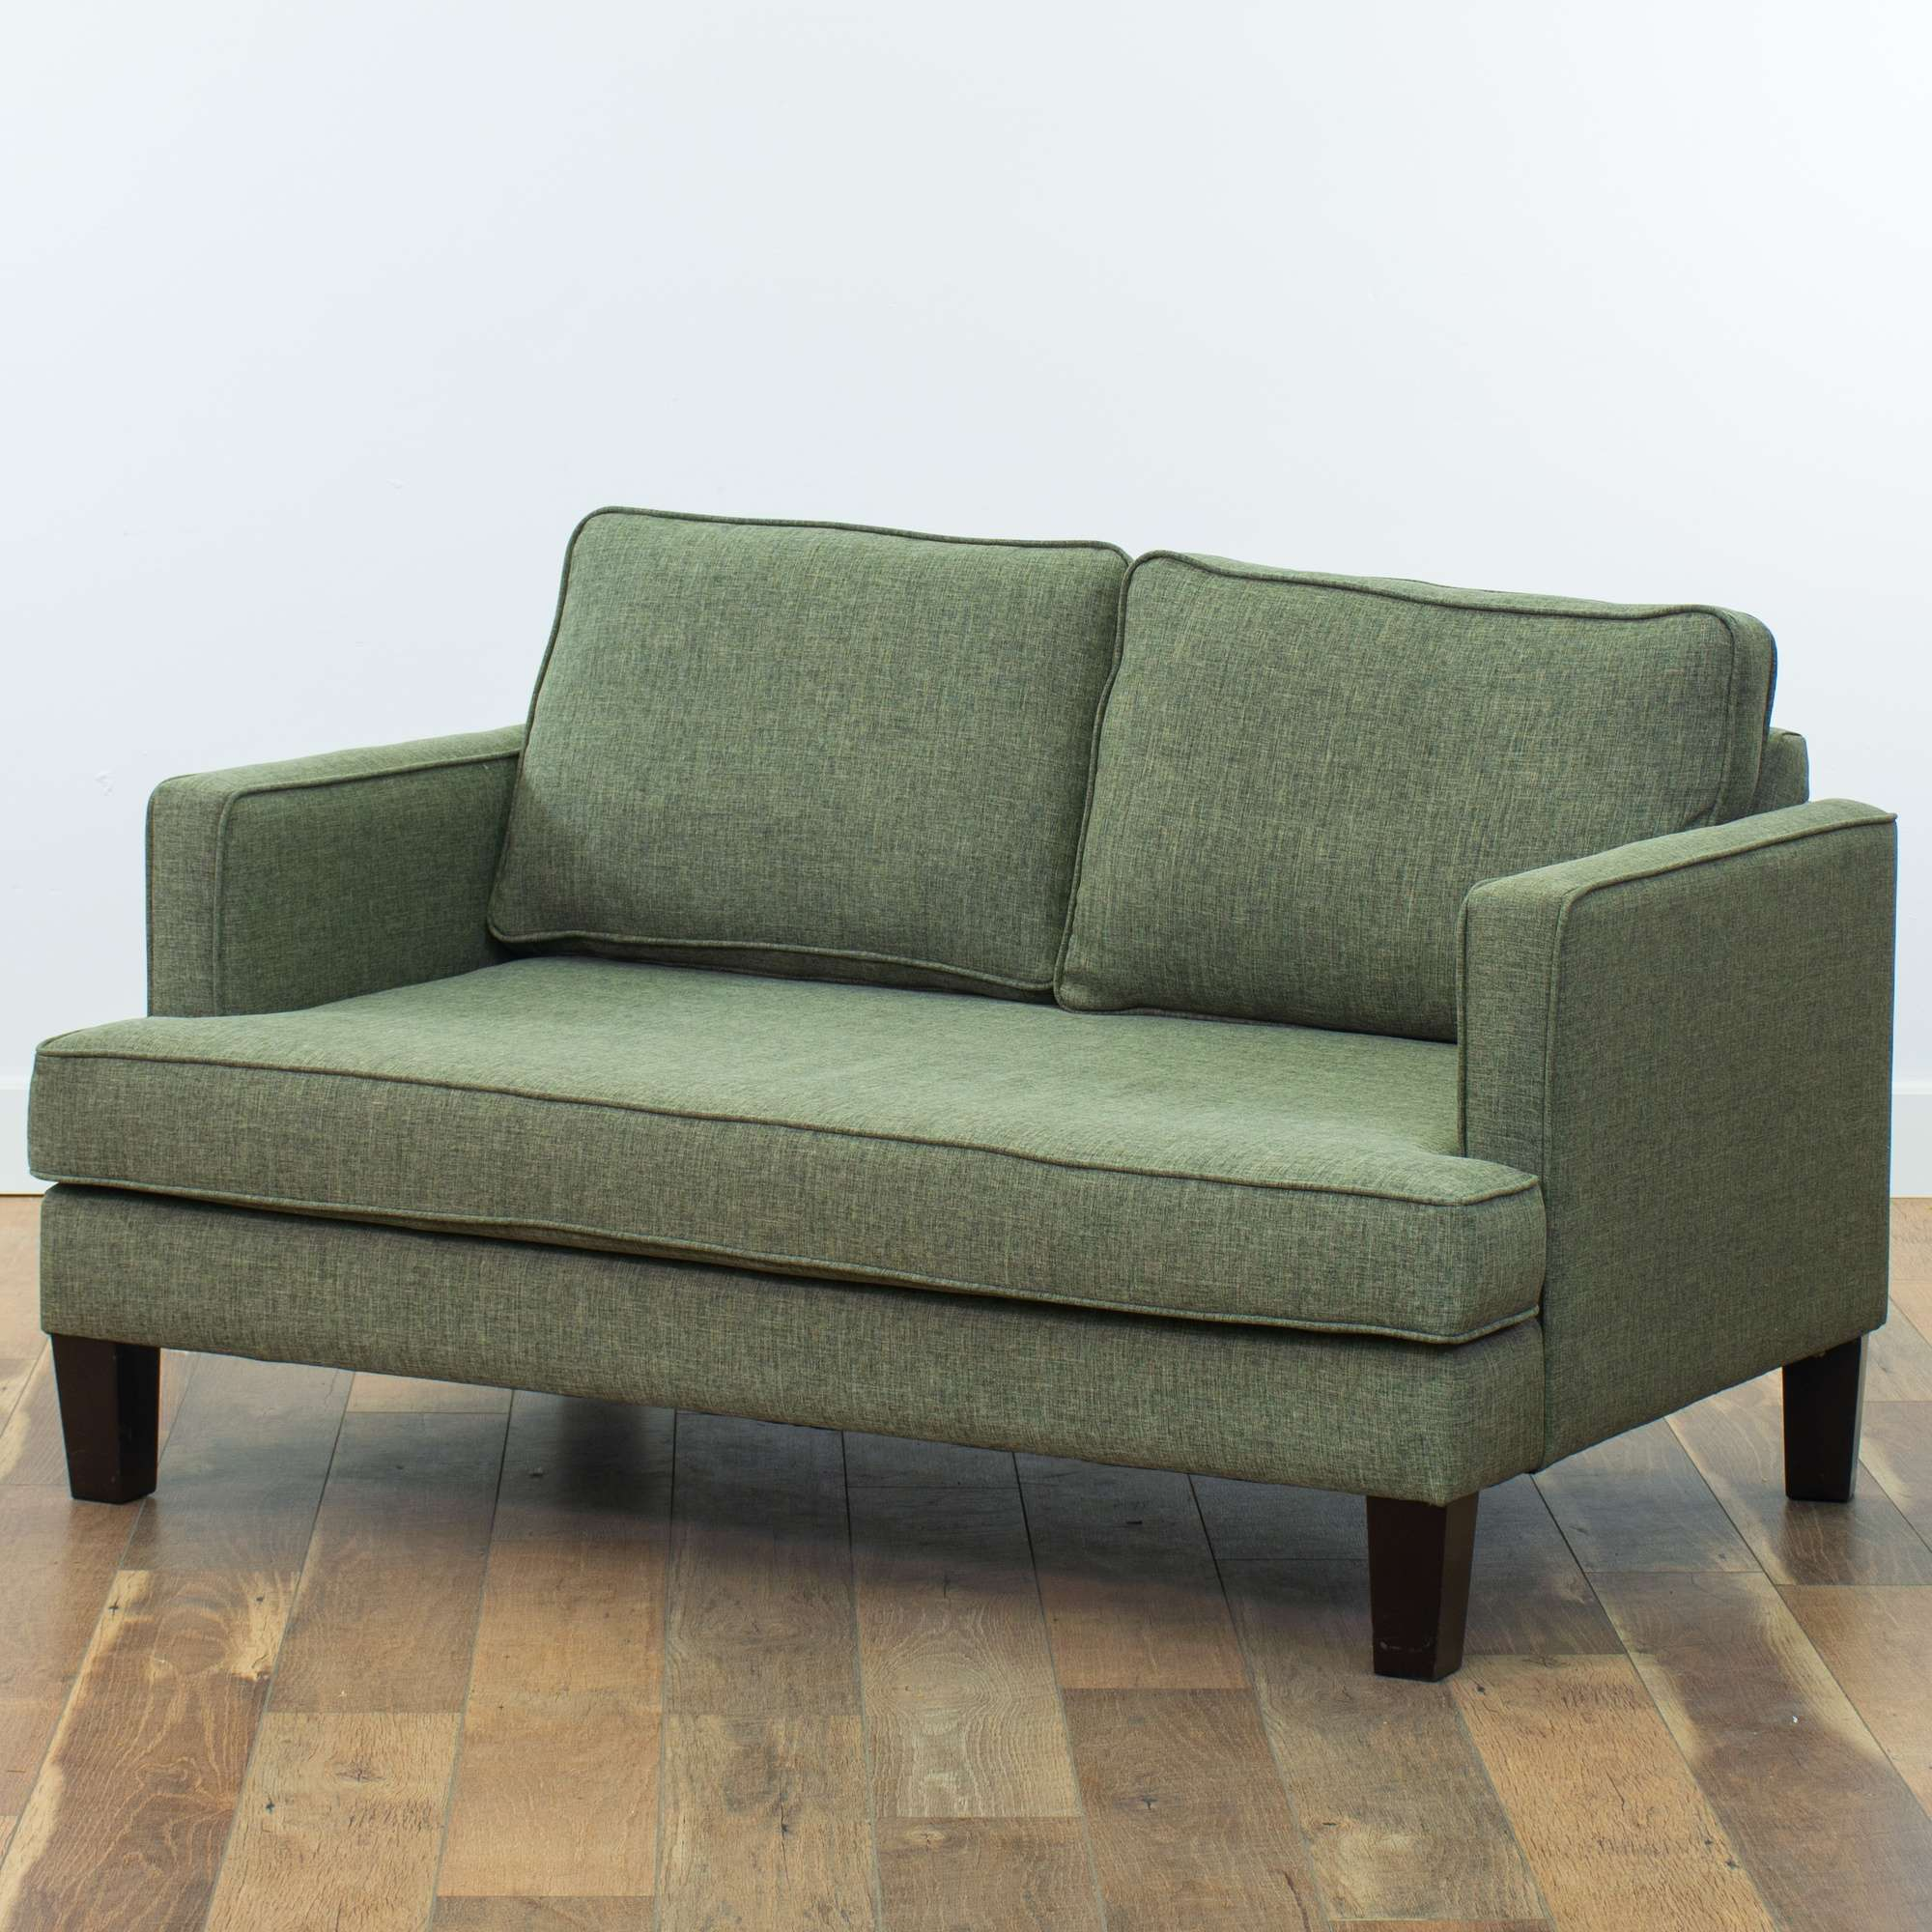 The Sofa Company Modern Green Grey Loveseat | Loveseat Vintage ...